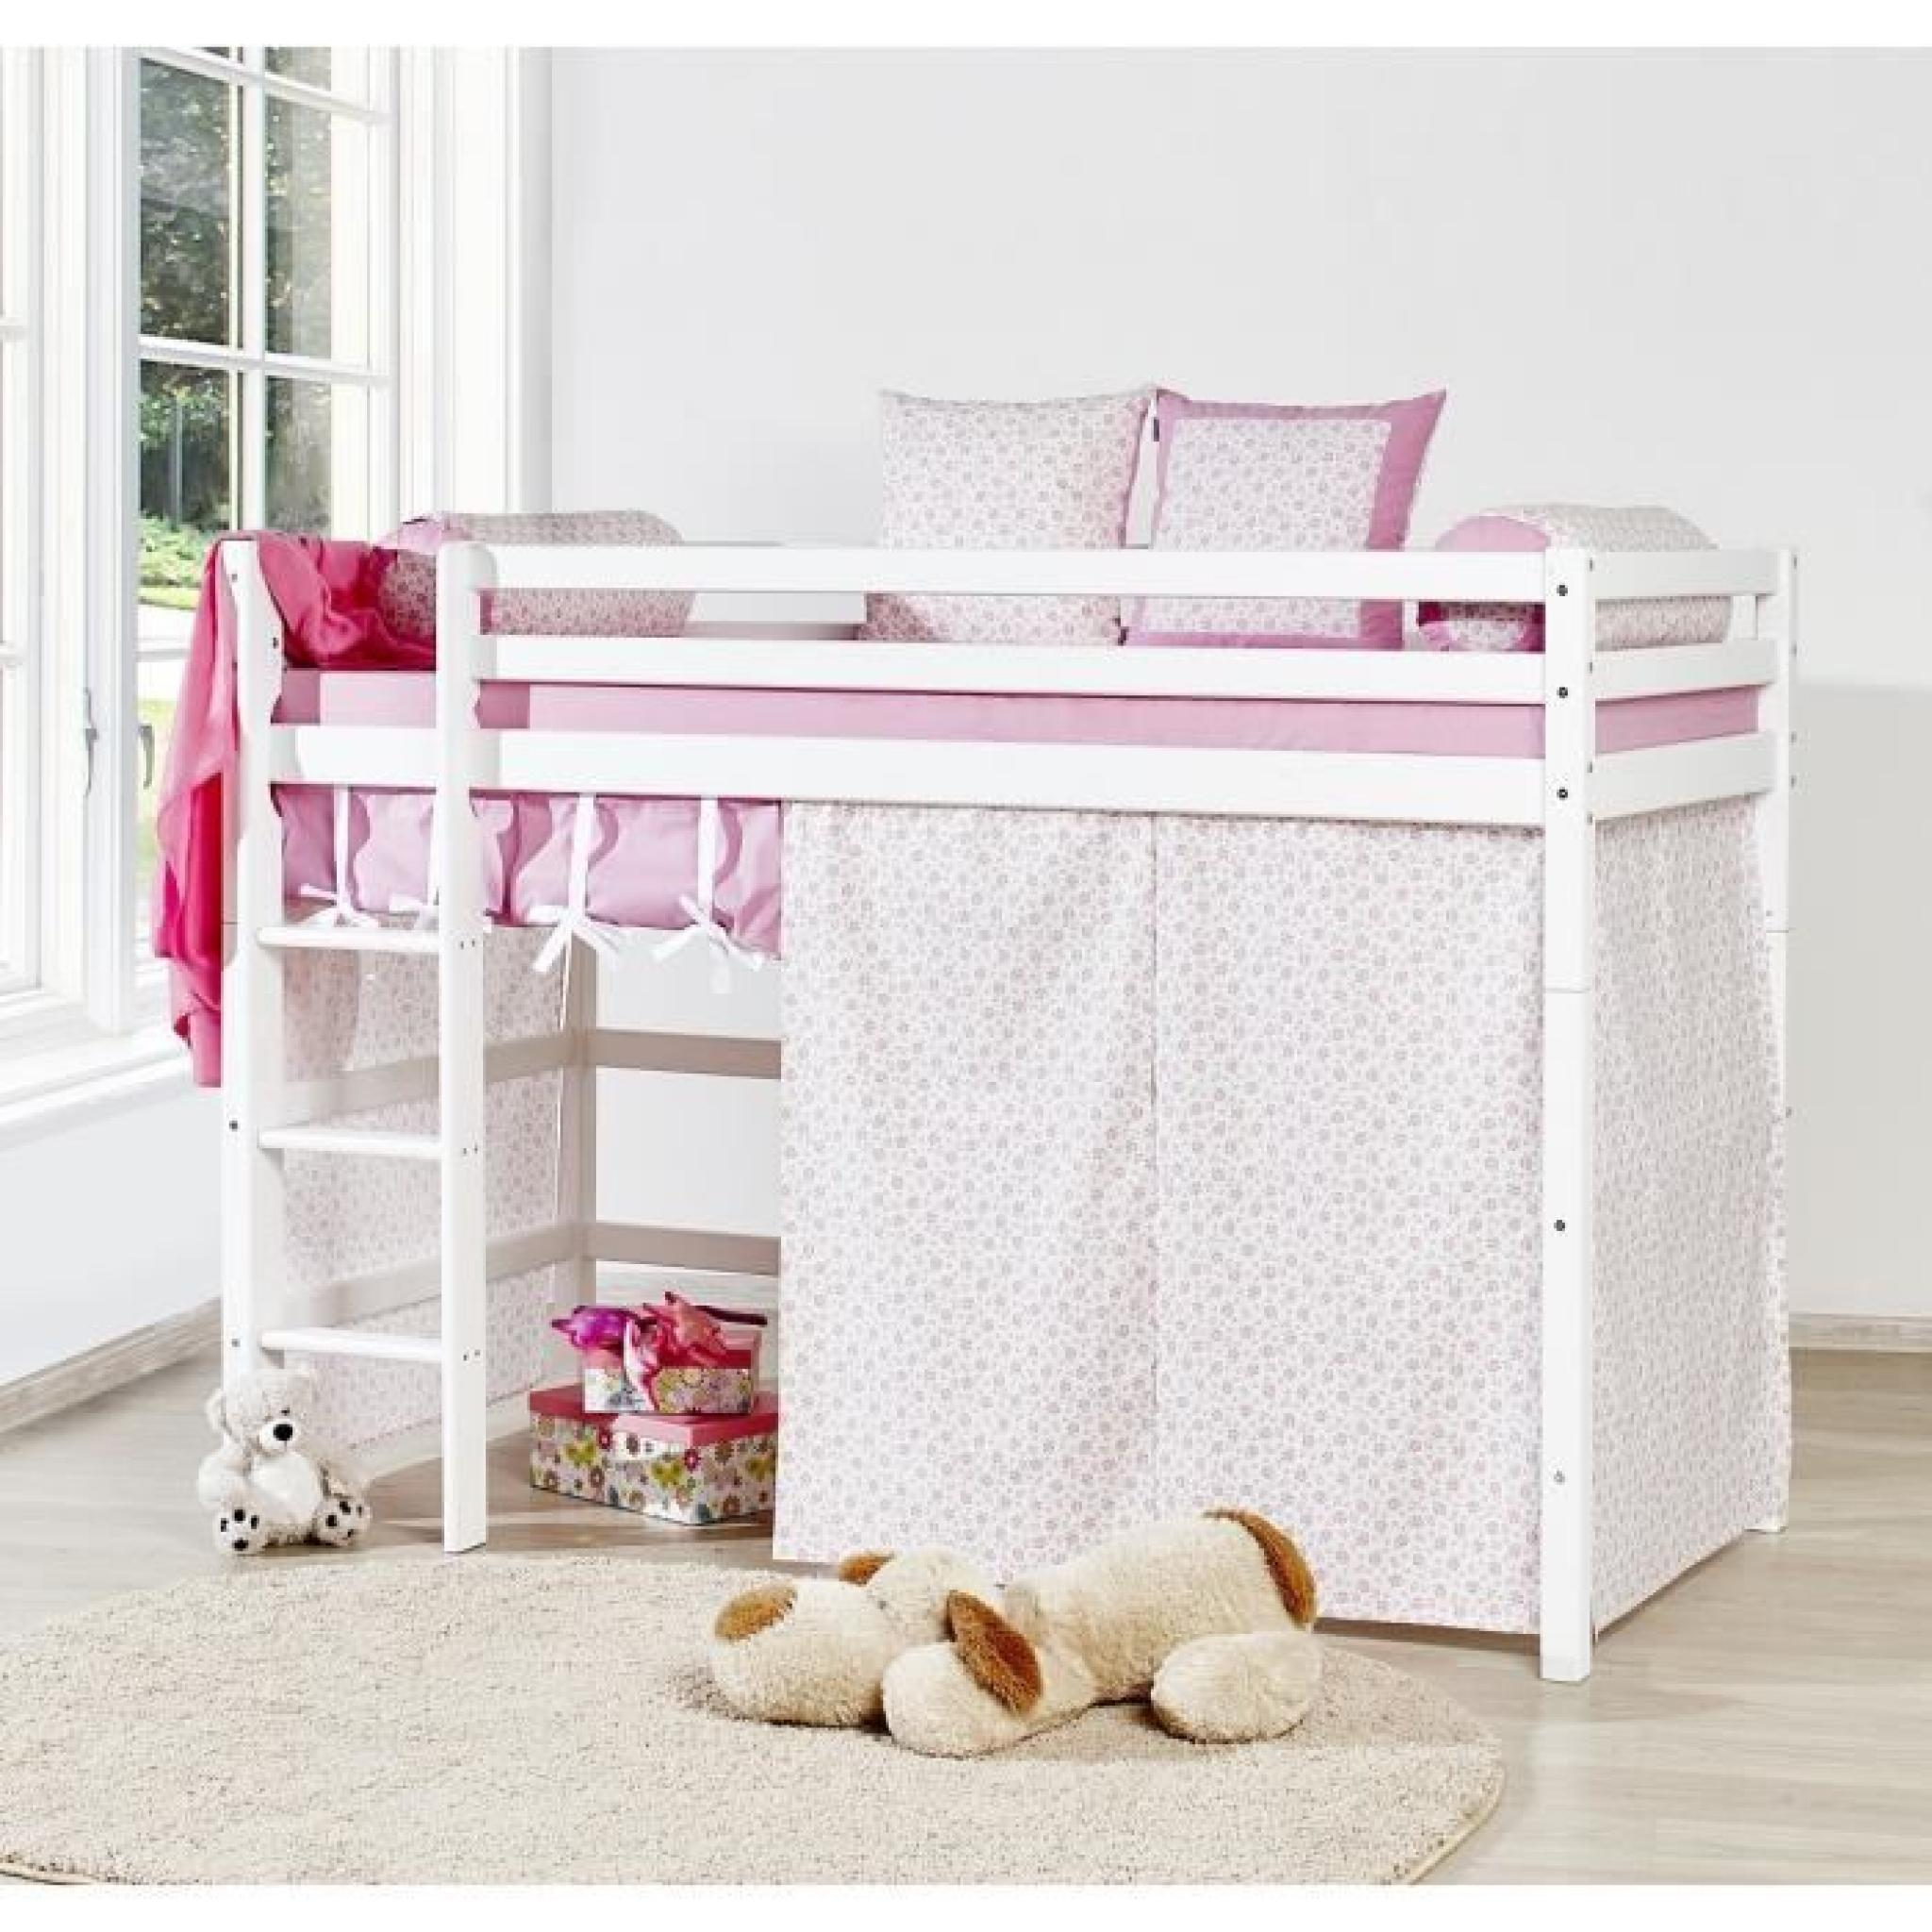 loop princesse lit superpos enfant 90x200cm blanc achat vente lit pas cher couleur et. Black Bedroom Furniture Sets. Home Design Ideas